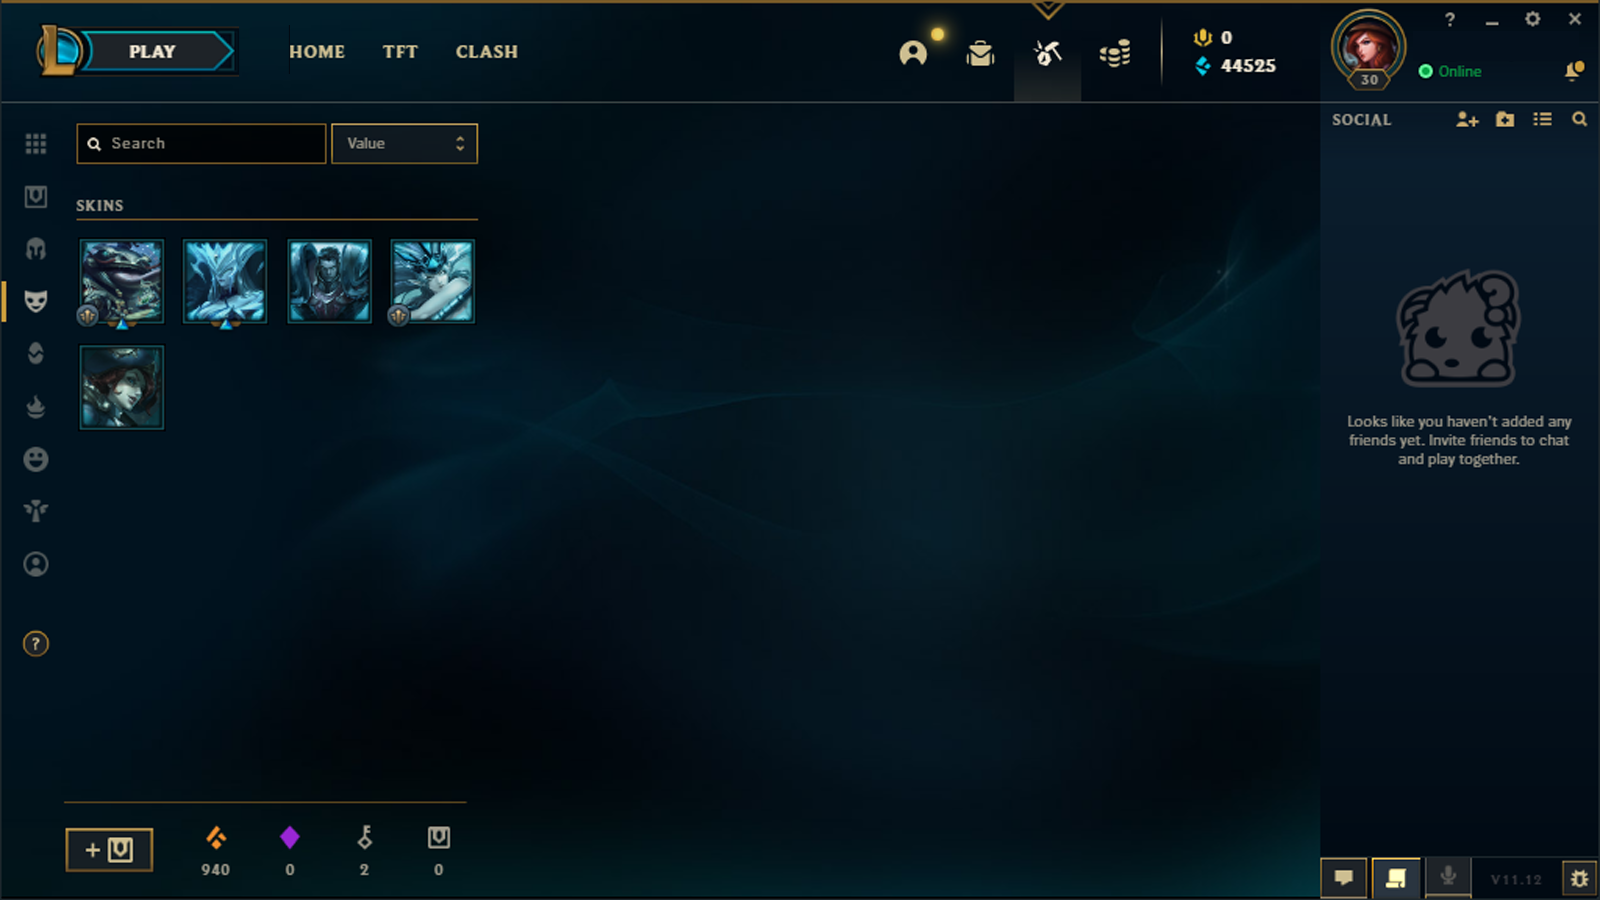 NA Smurf League Of Legends Account LoL Acc Tempest Janna Coin Emperor Tahm Kench - $8.97